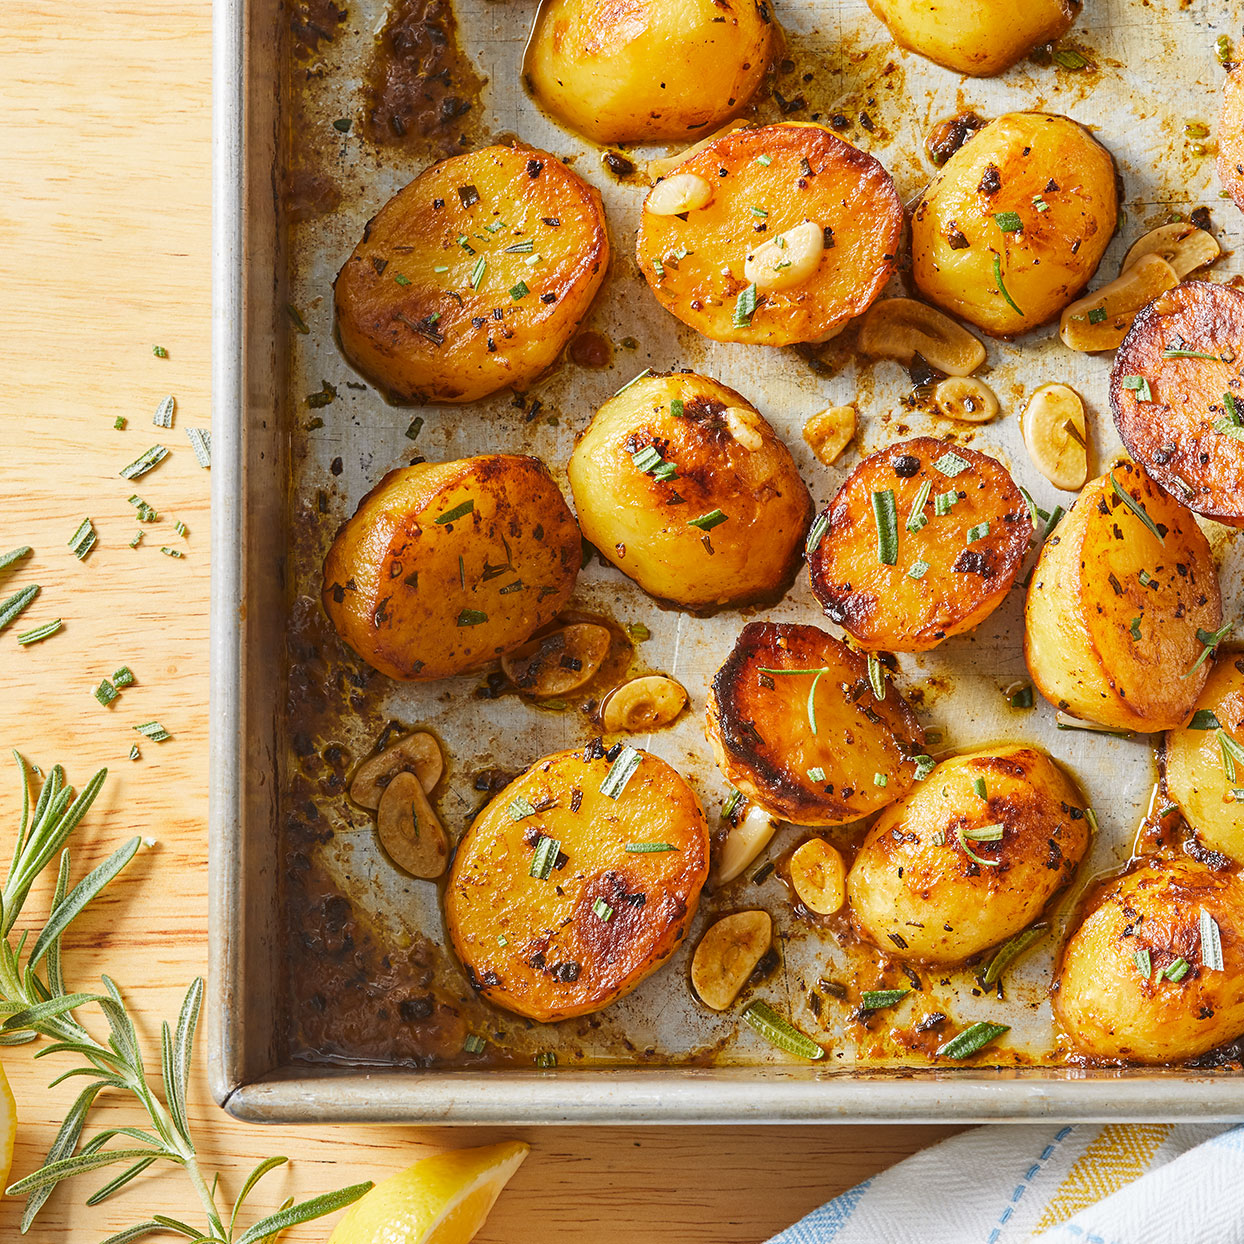 Lemon-Rosemary Melting Potatoes